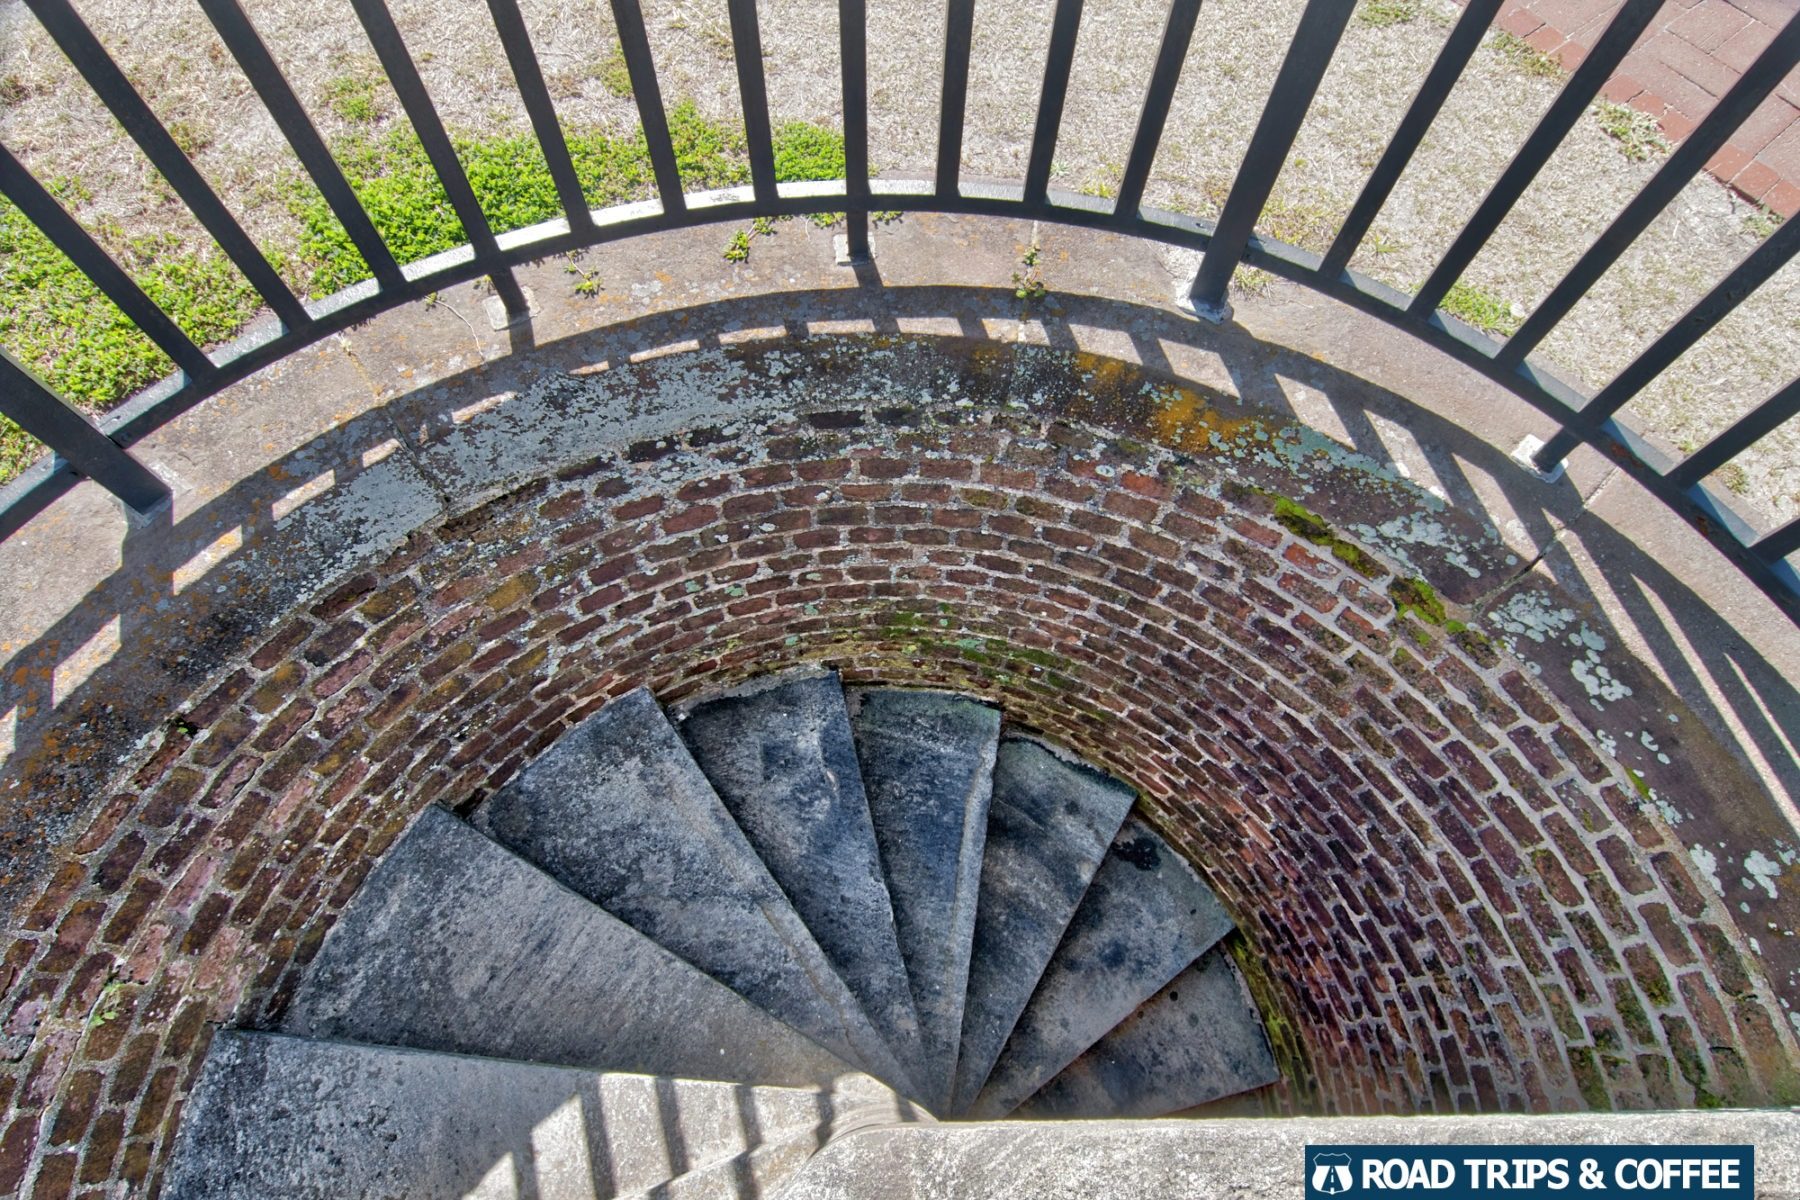 A stone spiral staircase from the top level of Fort Pulaski National Monument in Savannah, Georgia